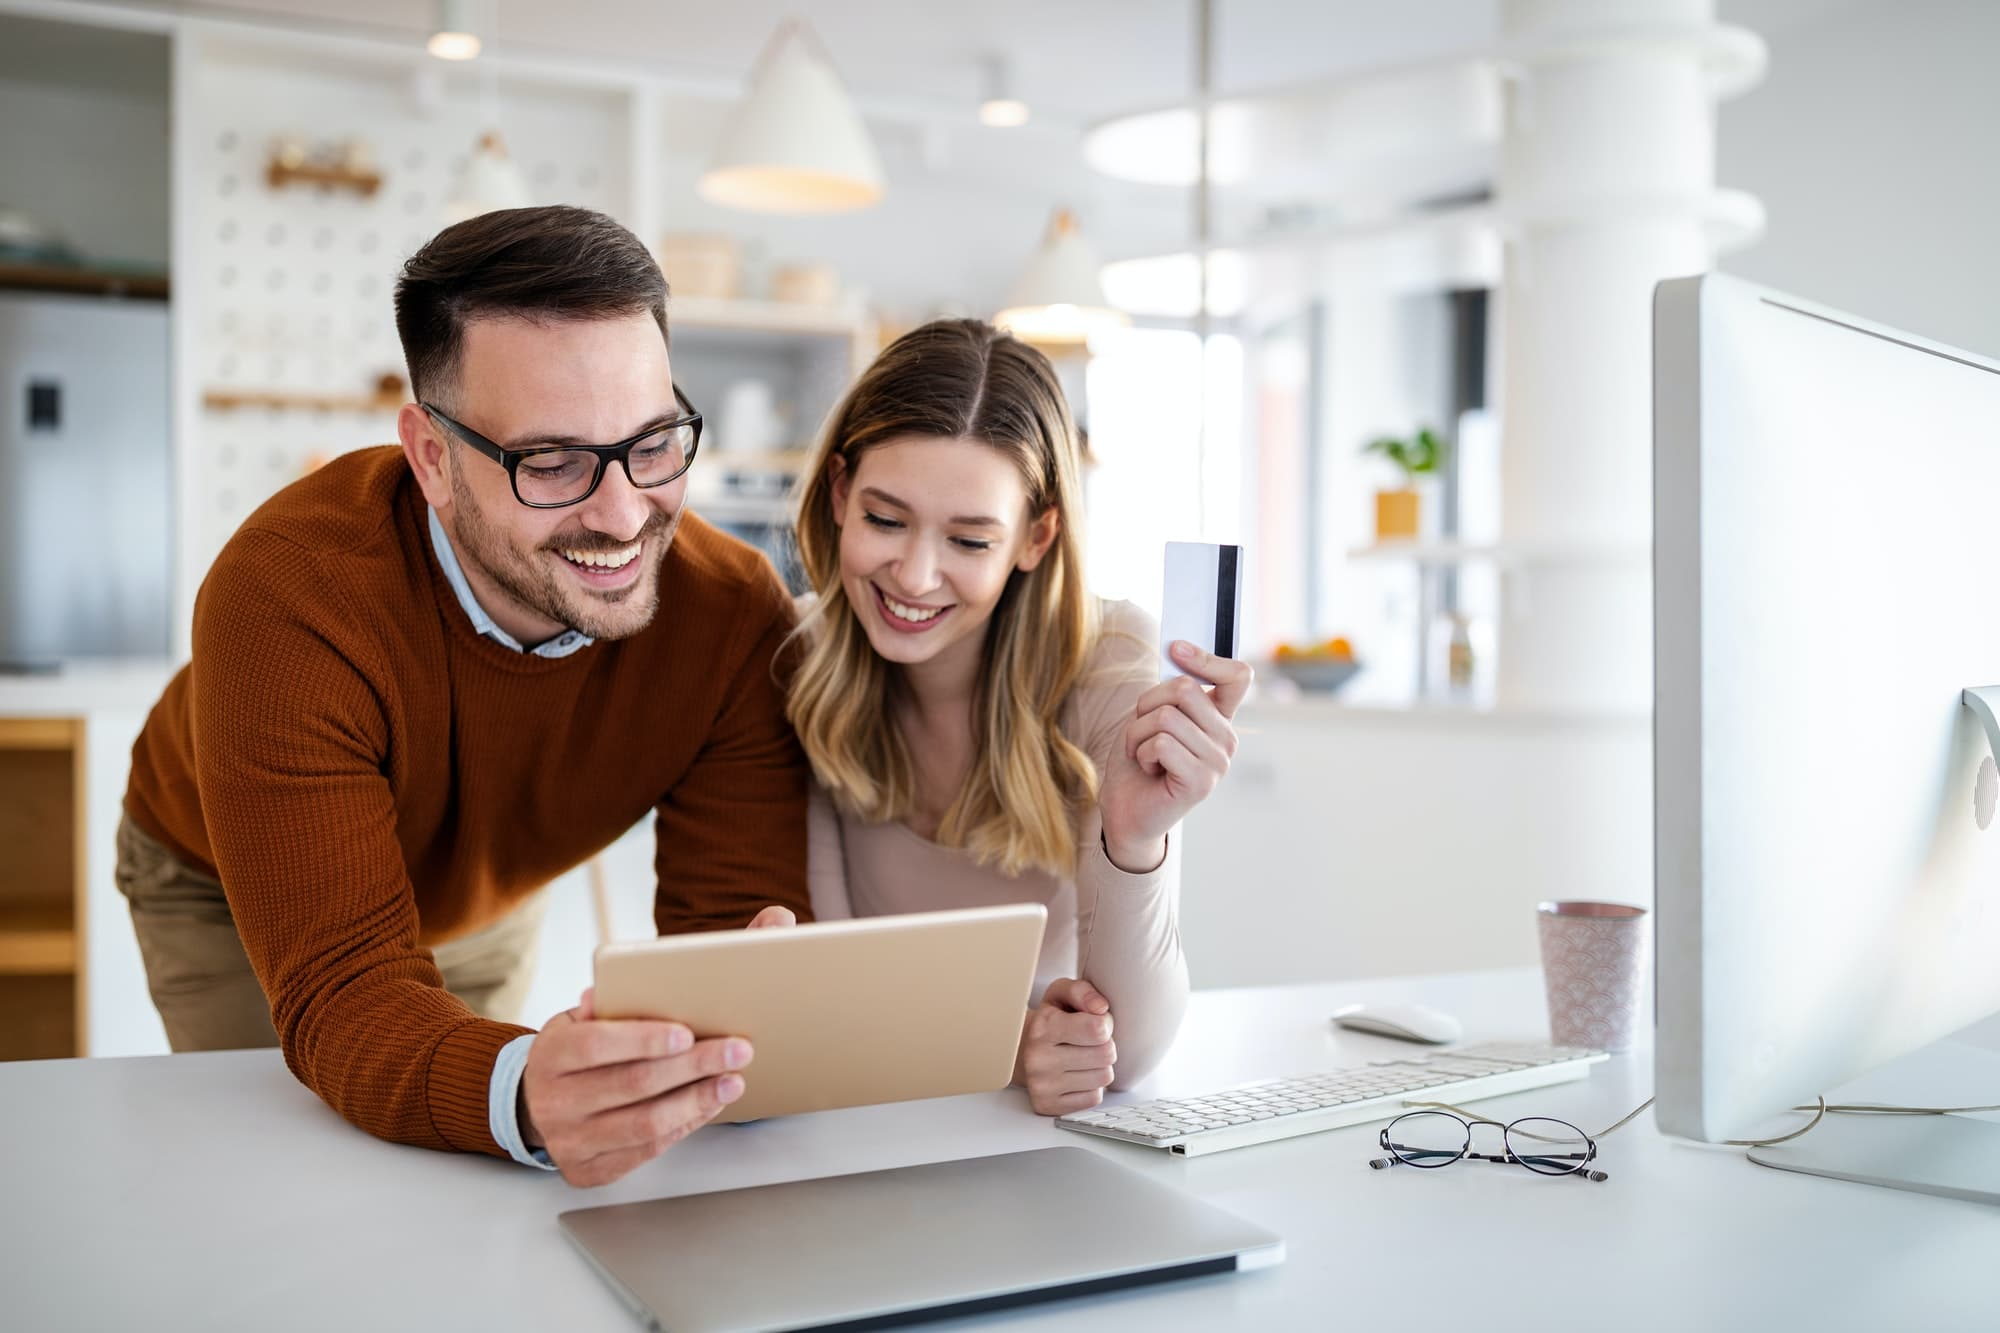 Portrait of a cheerful couple shopping online. Technology, e-commerce, banking concept